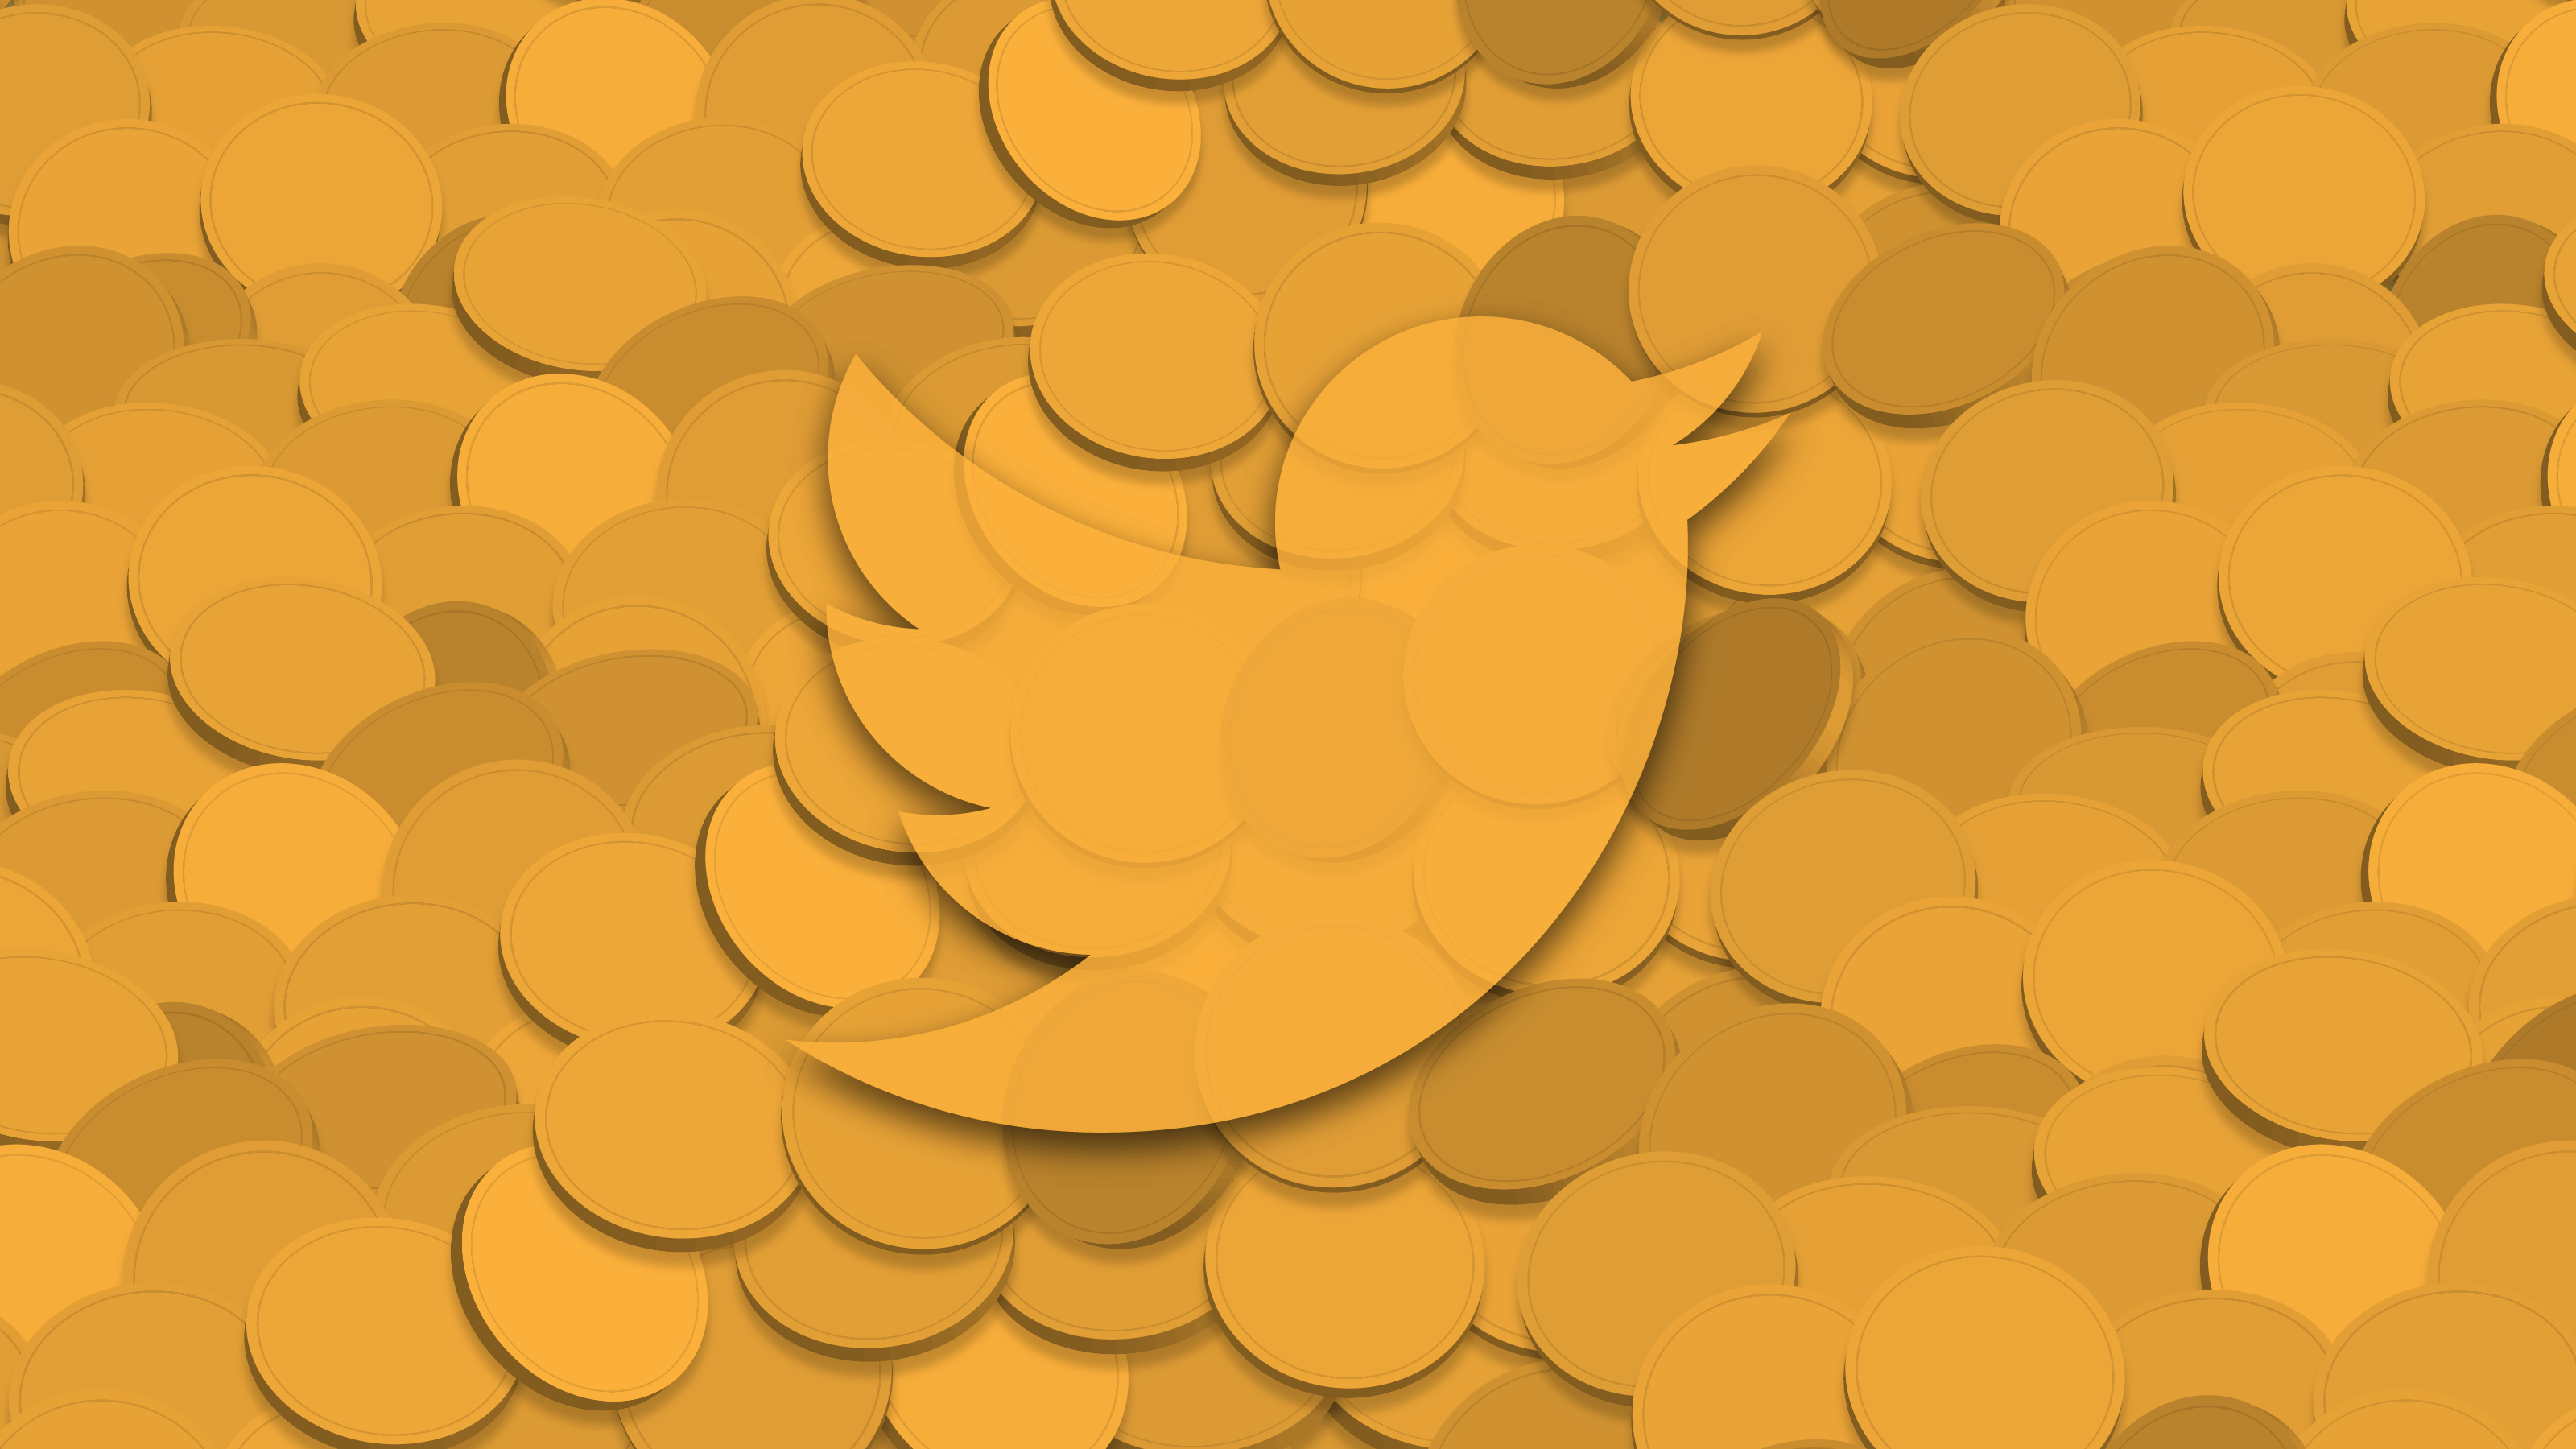 Twitter joins Facebook and Google in banning cryptocurrency adverts